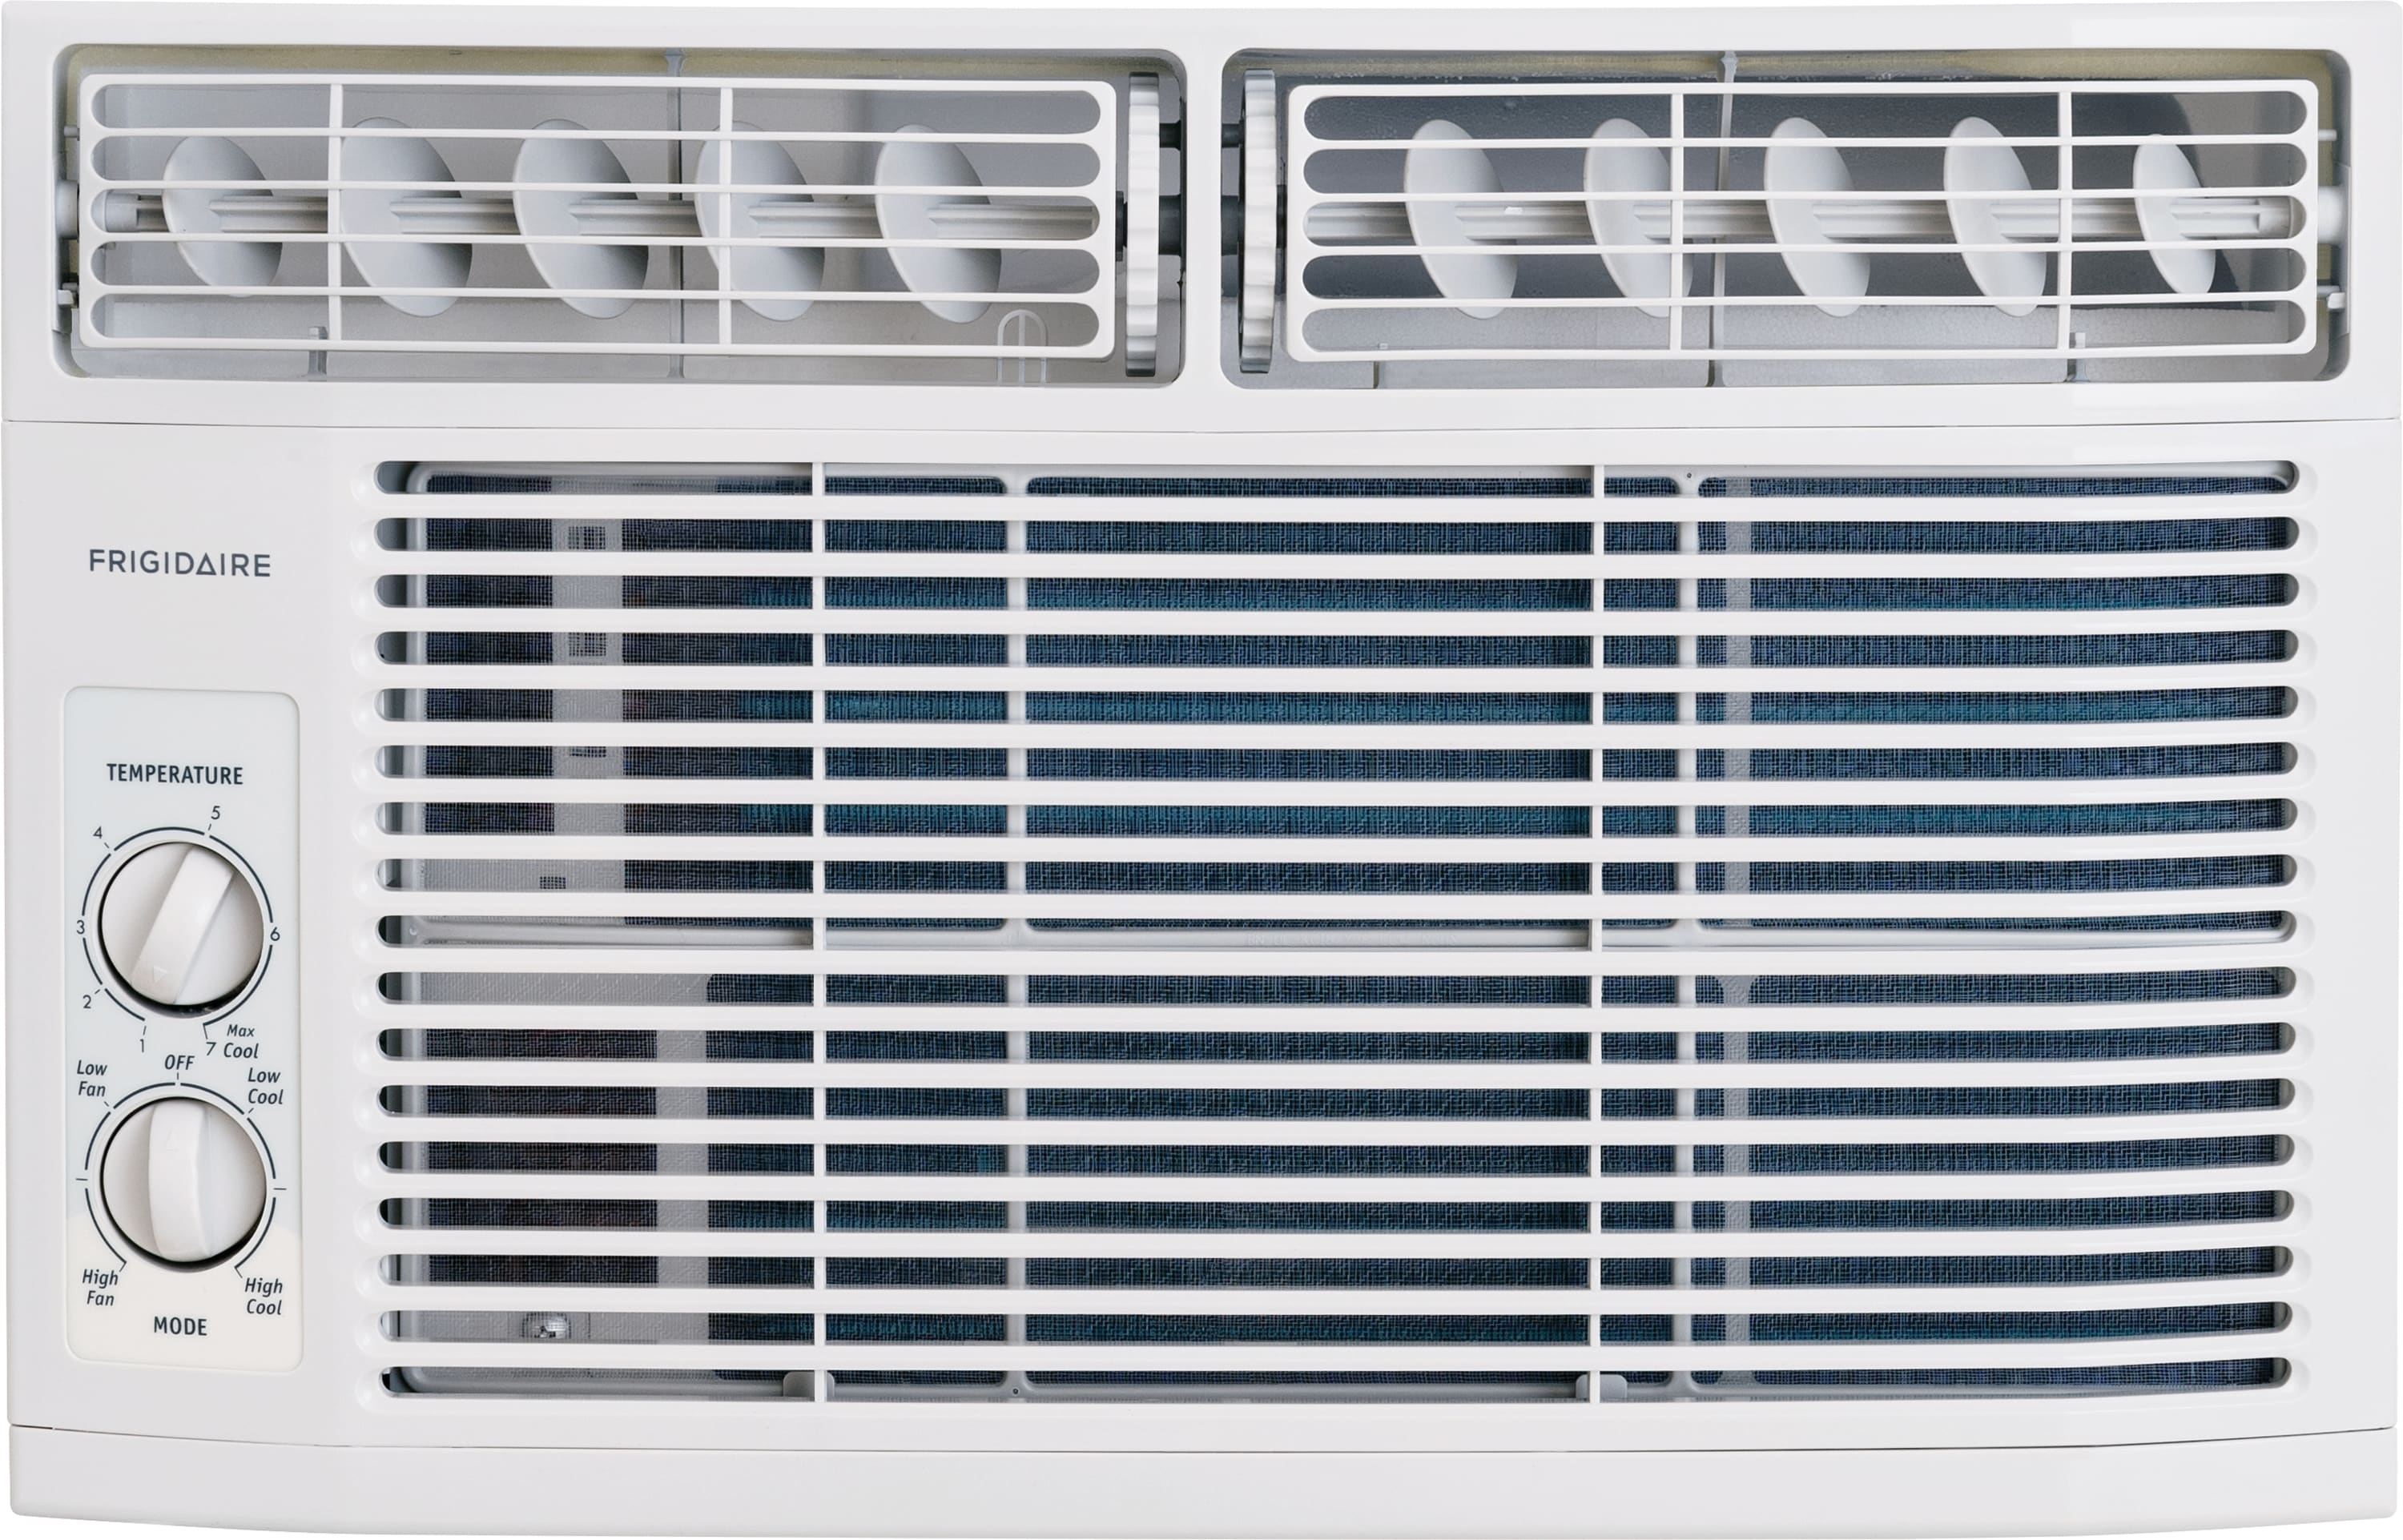 Model: FFRA0811R1 | 8,000 BTU Window-Mounted Room Air Conditioner